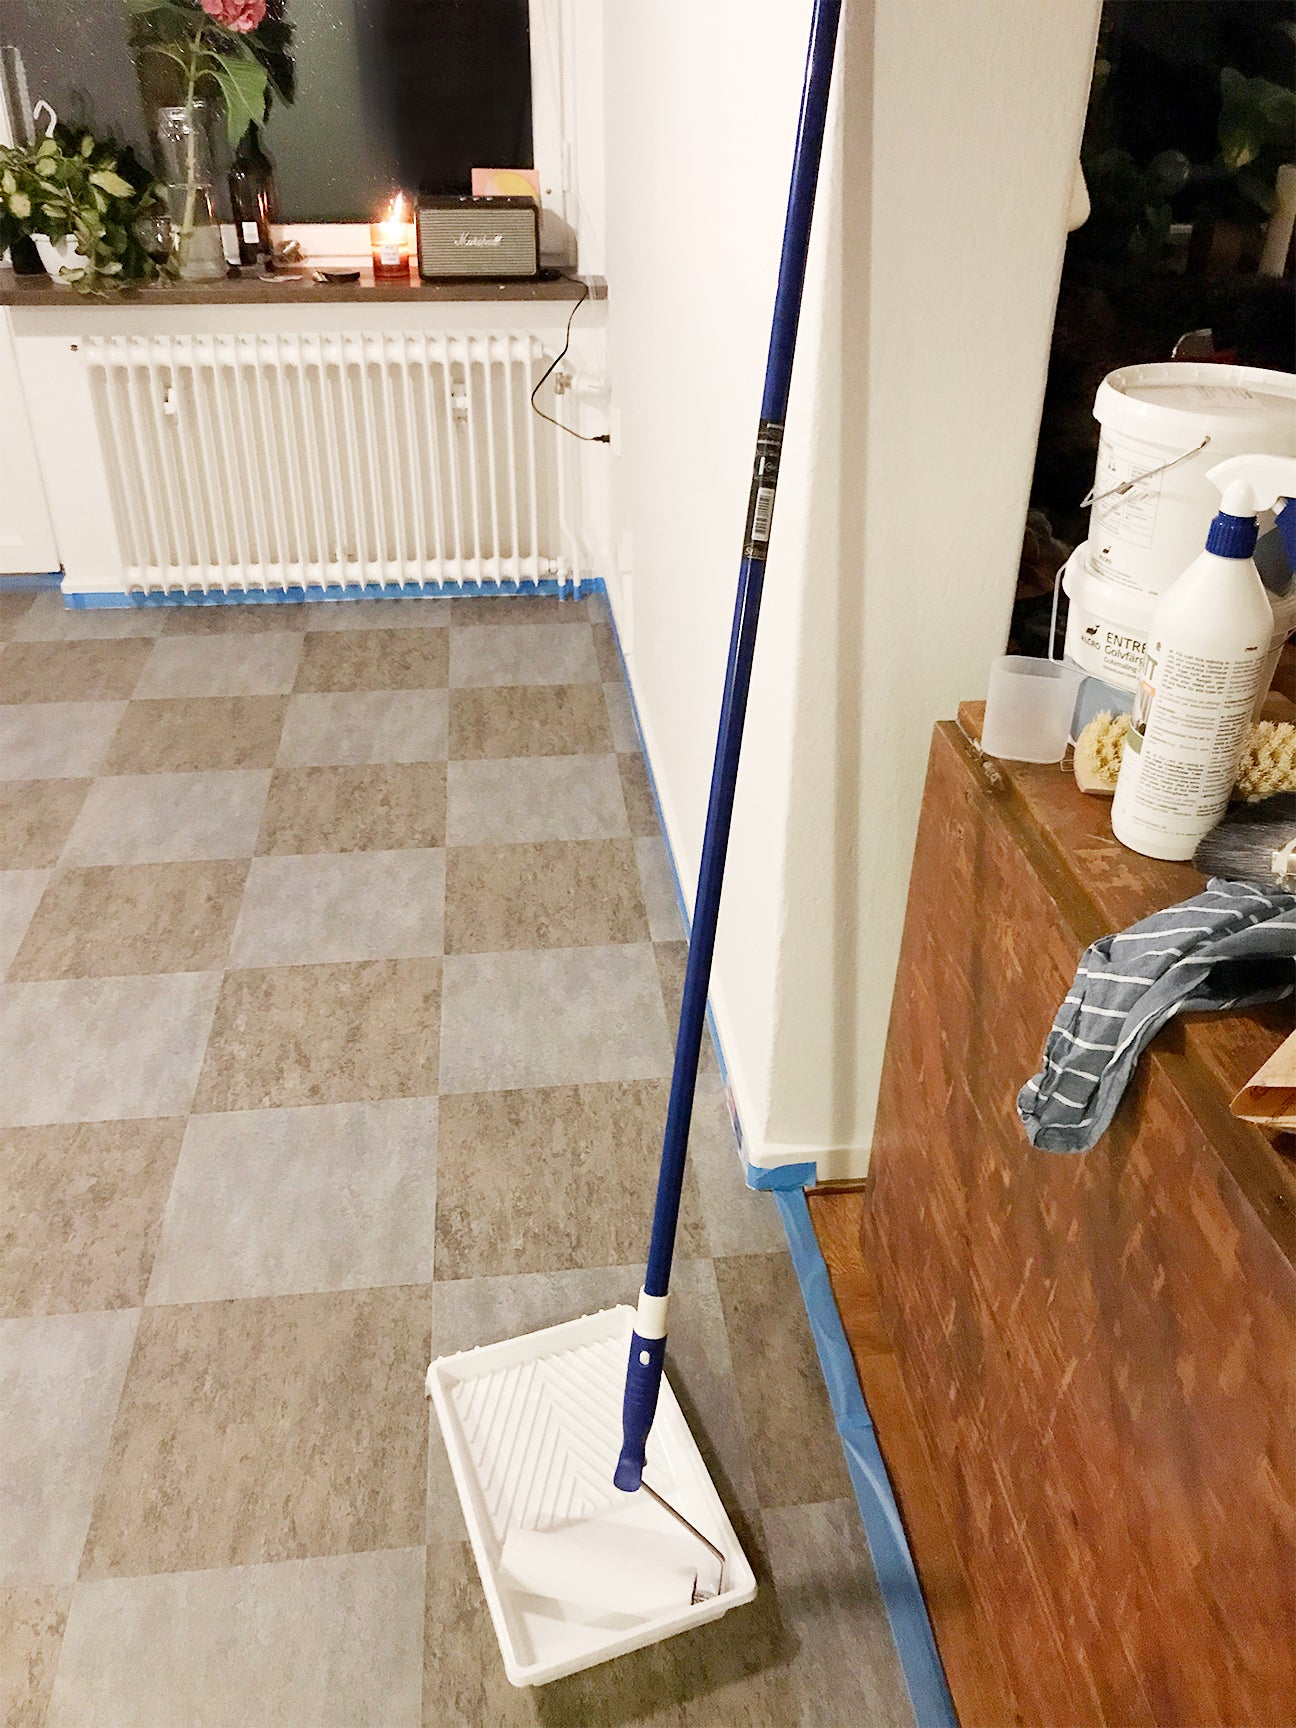 This Terrazzo Floor Diy Is As Cool As The Real Deal